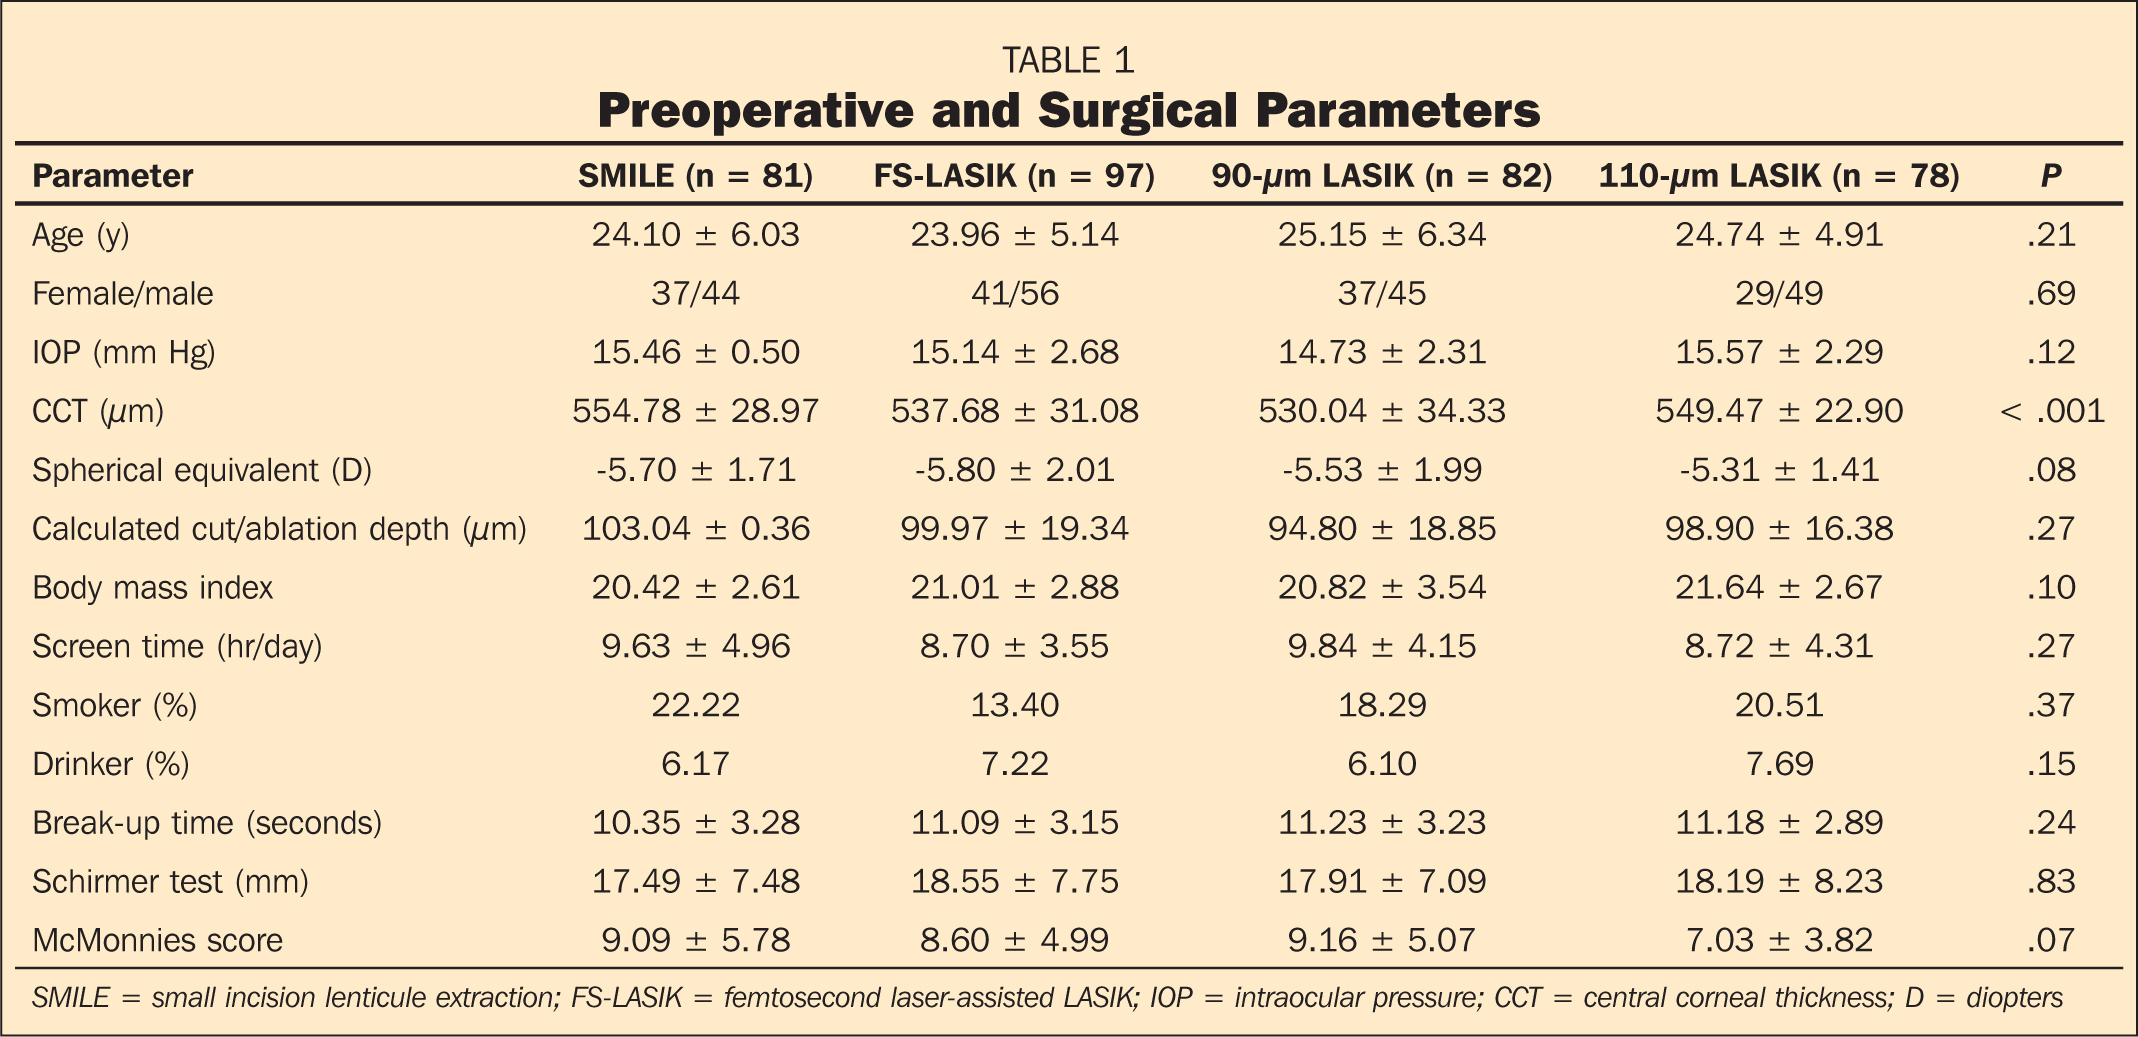 Preoperative and Surgical Parameters